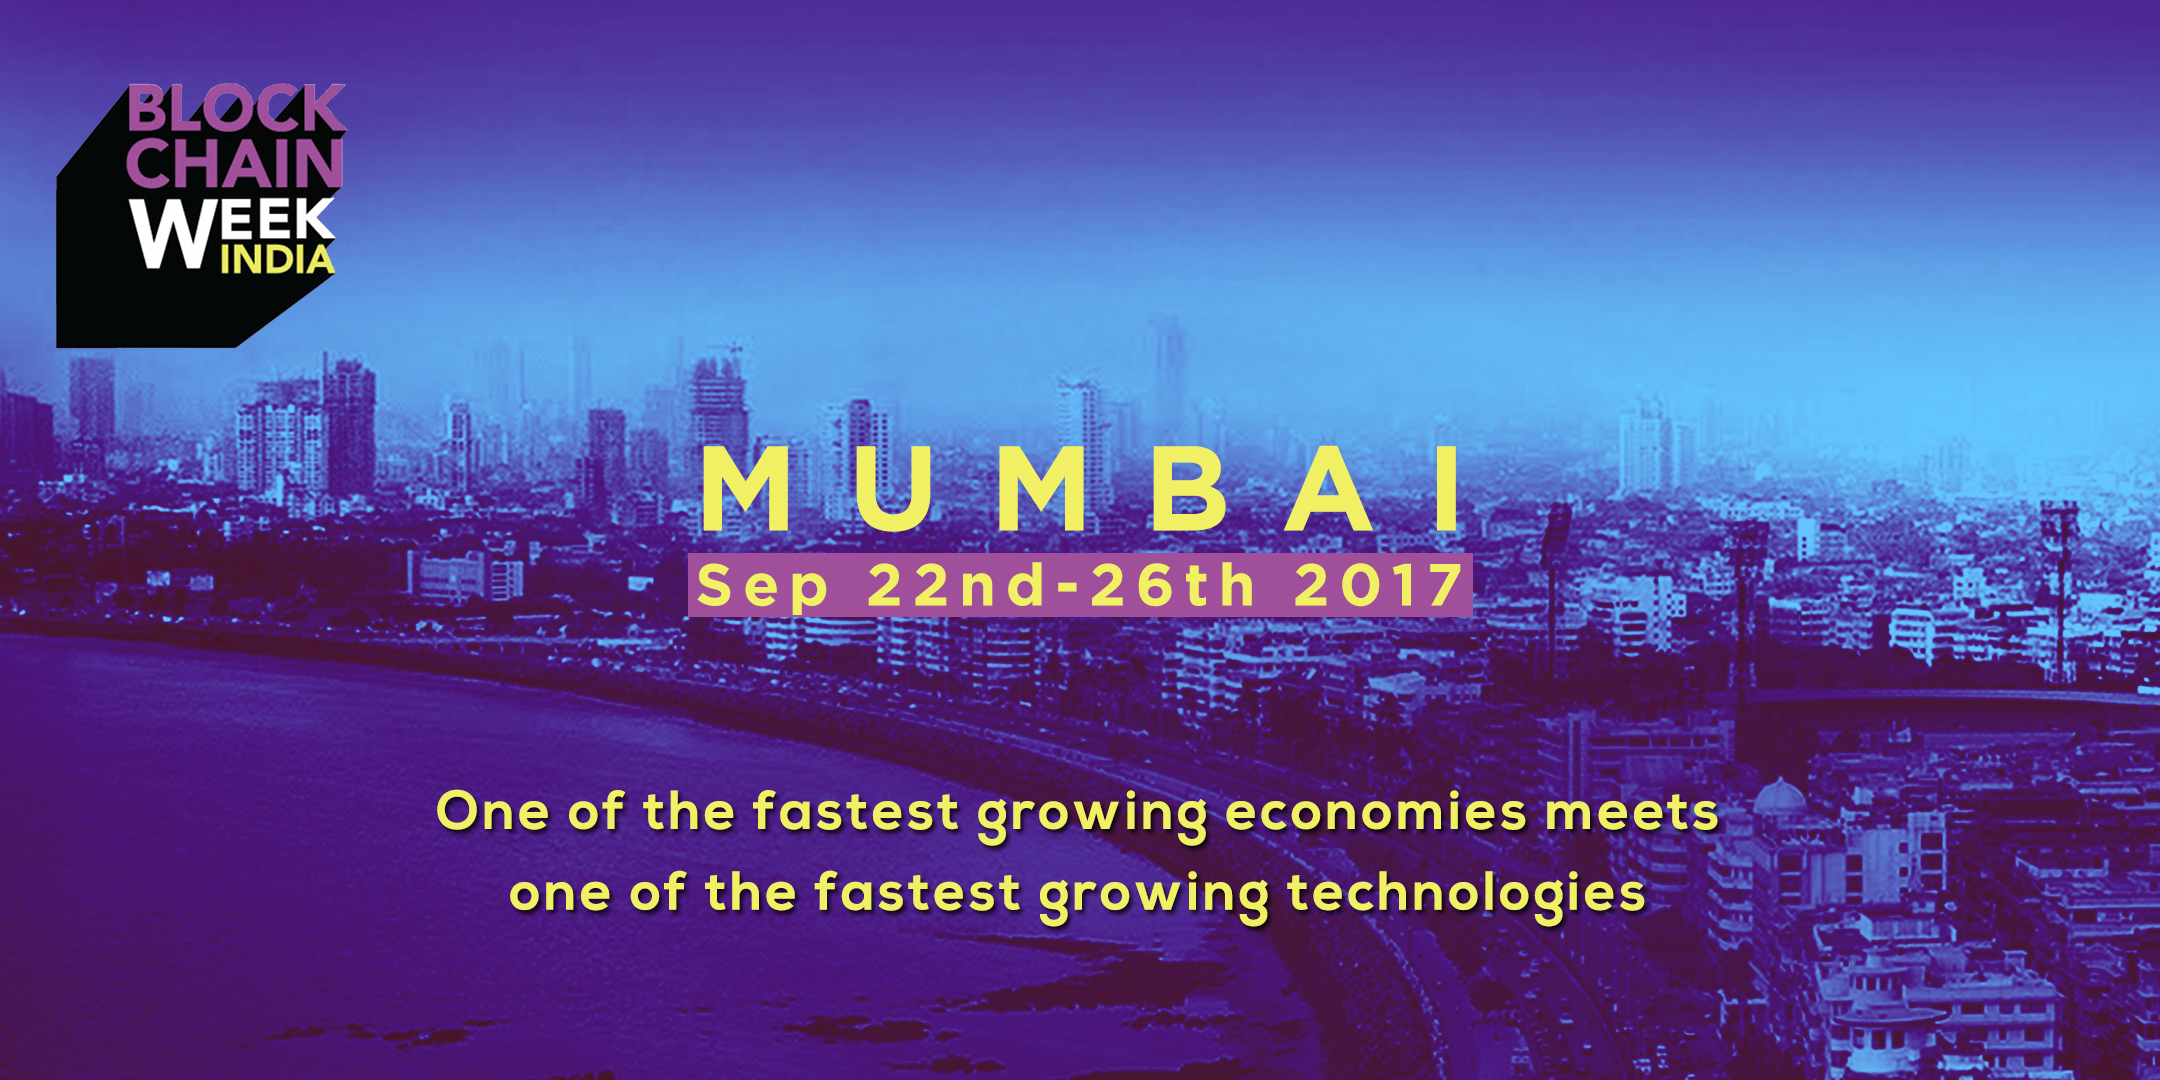 India Blockchain Week Septemeber 2017 Mumbai